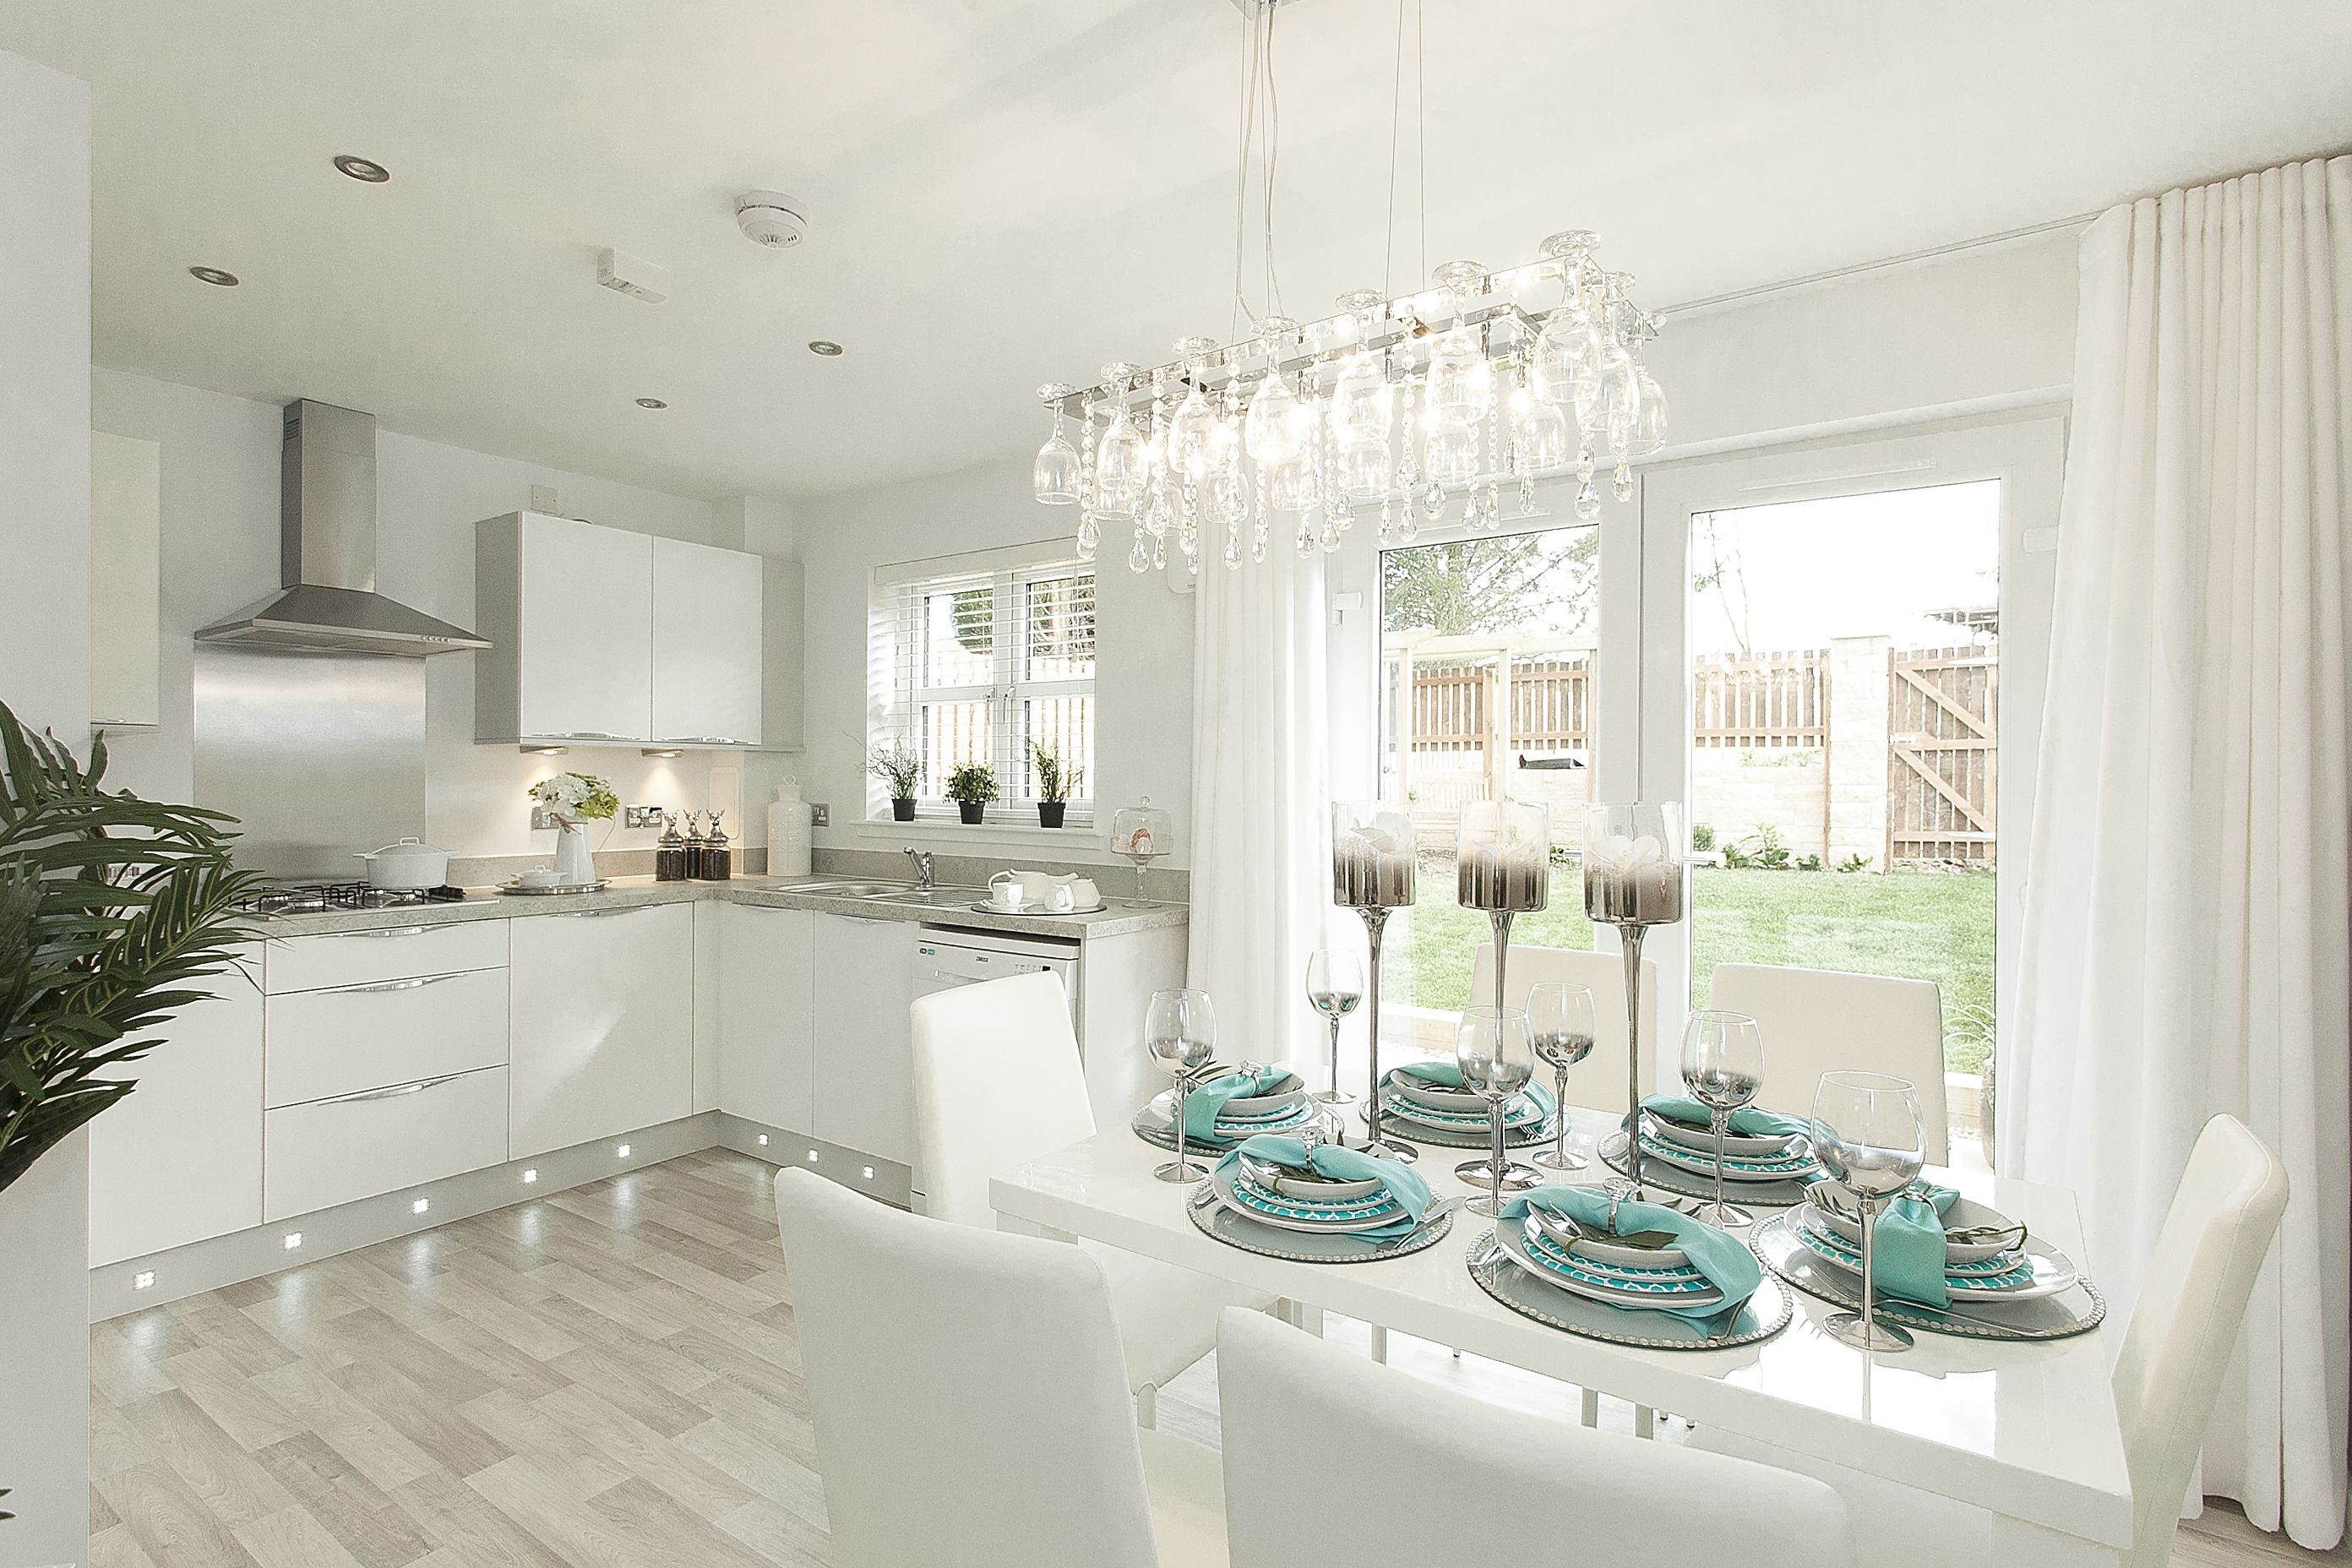 Show home kitchen diner